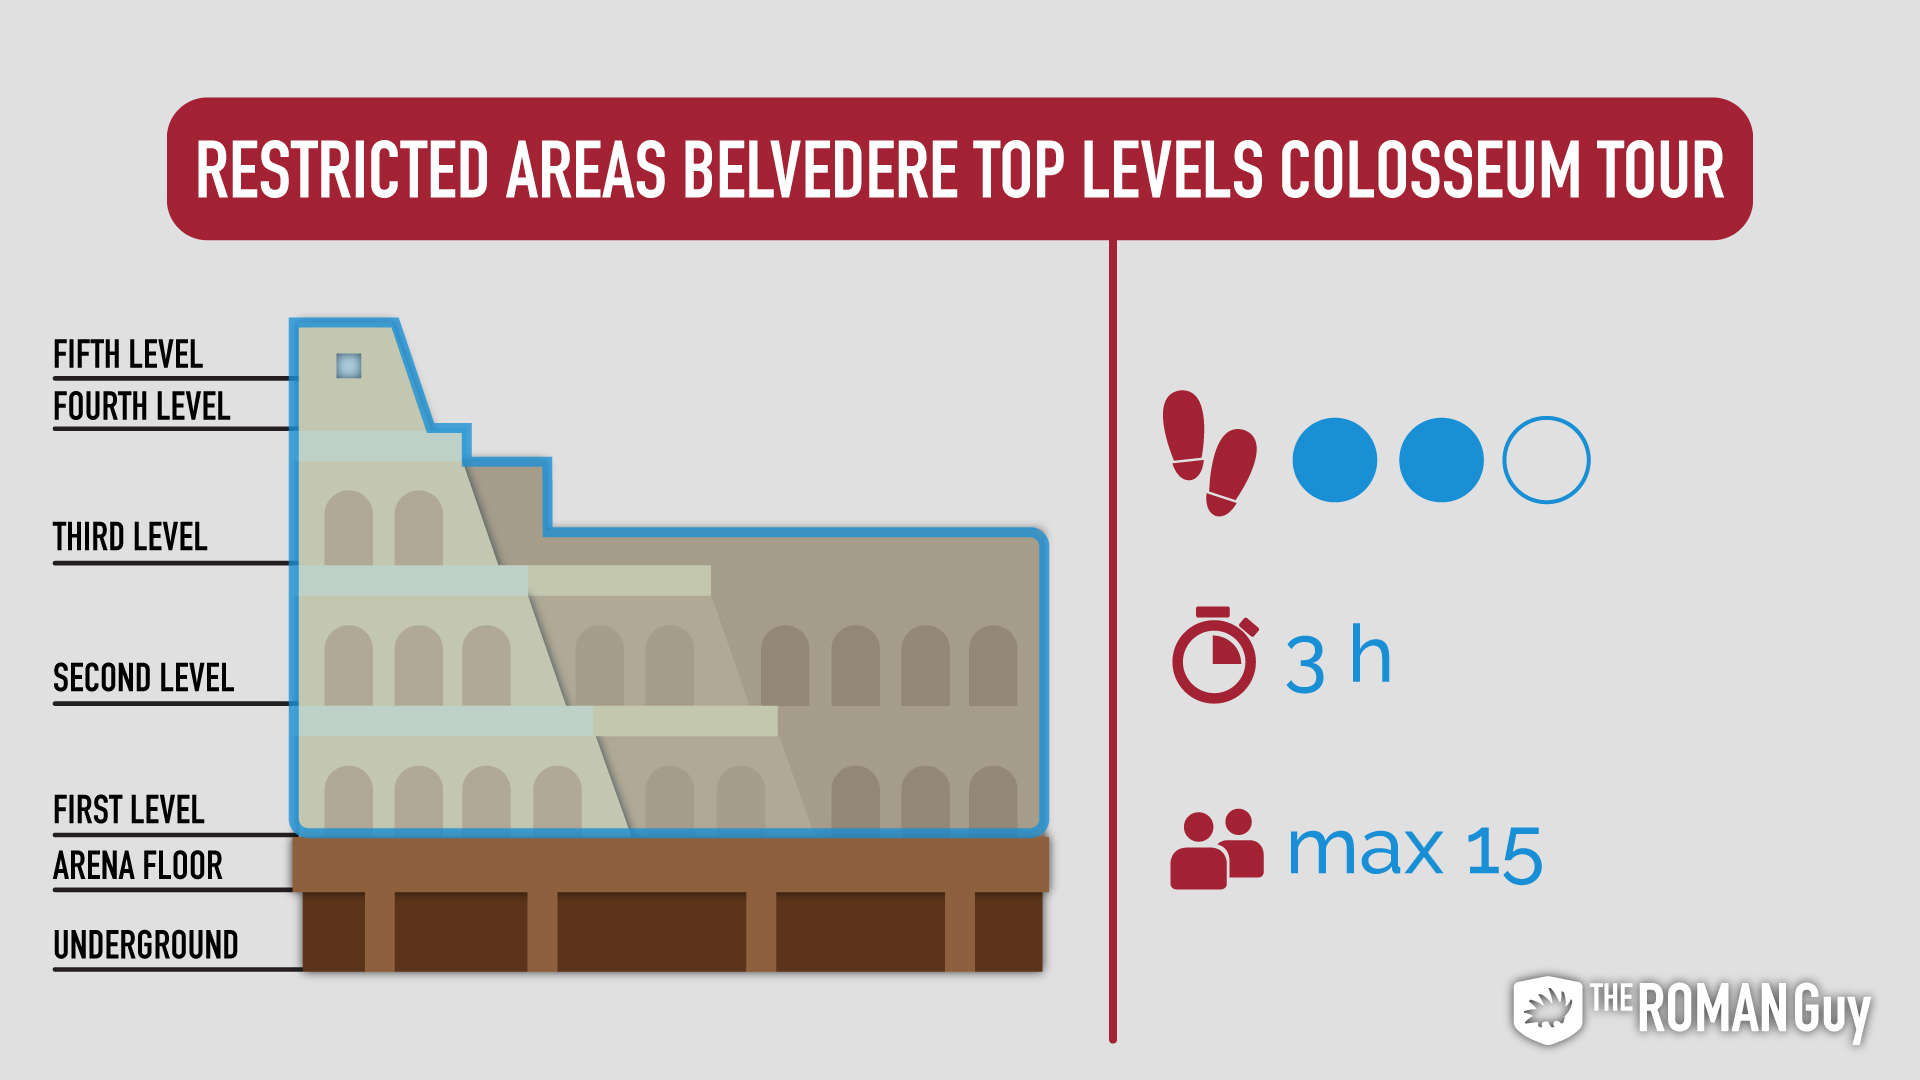 Restricted-areas-belvedere-top-levels-colosseum-tour-the-roman-guy